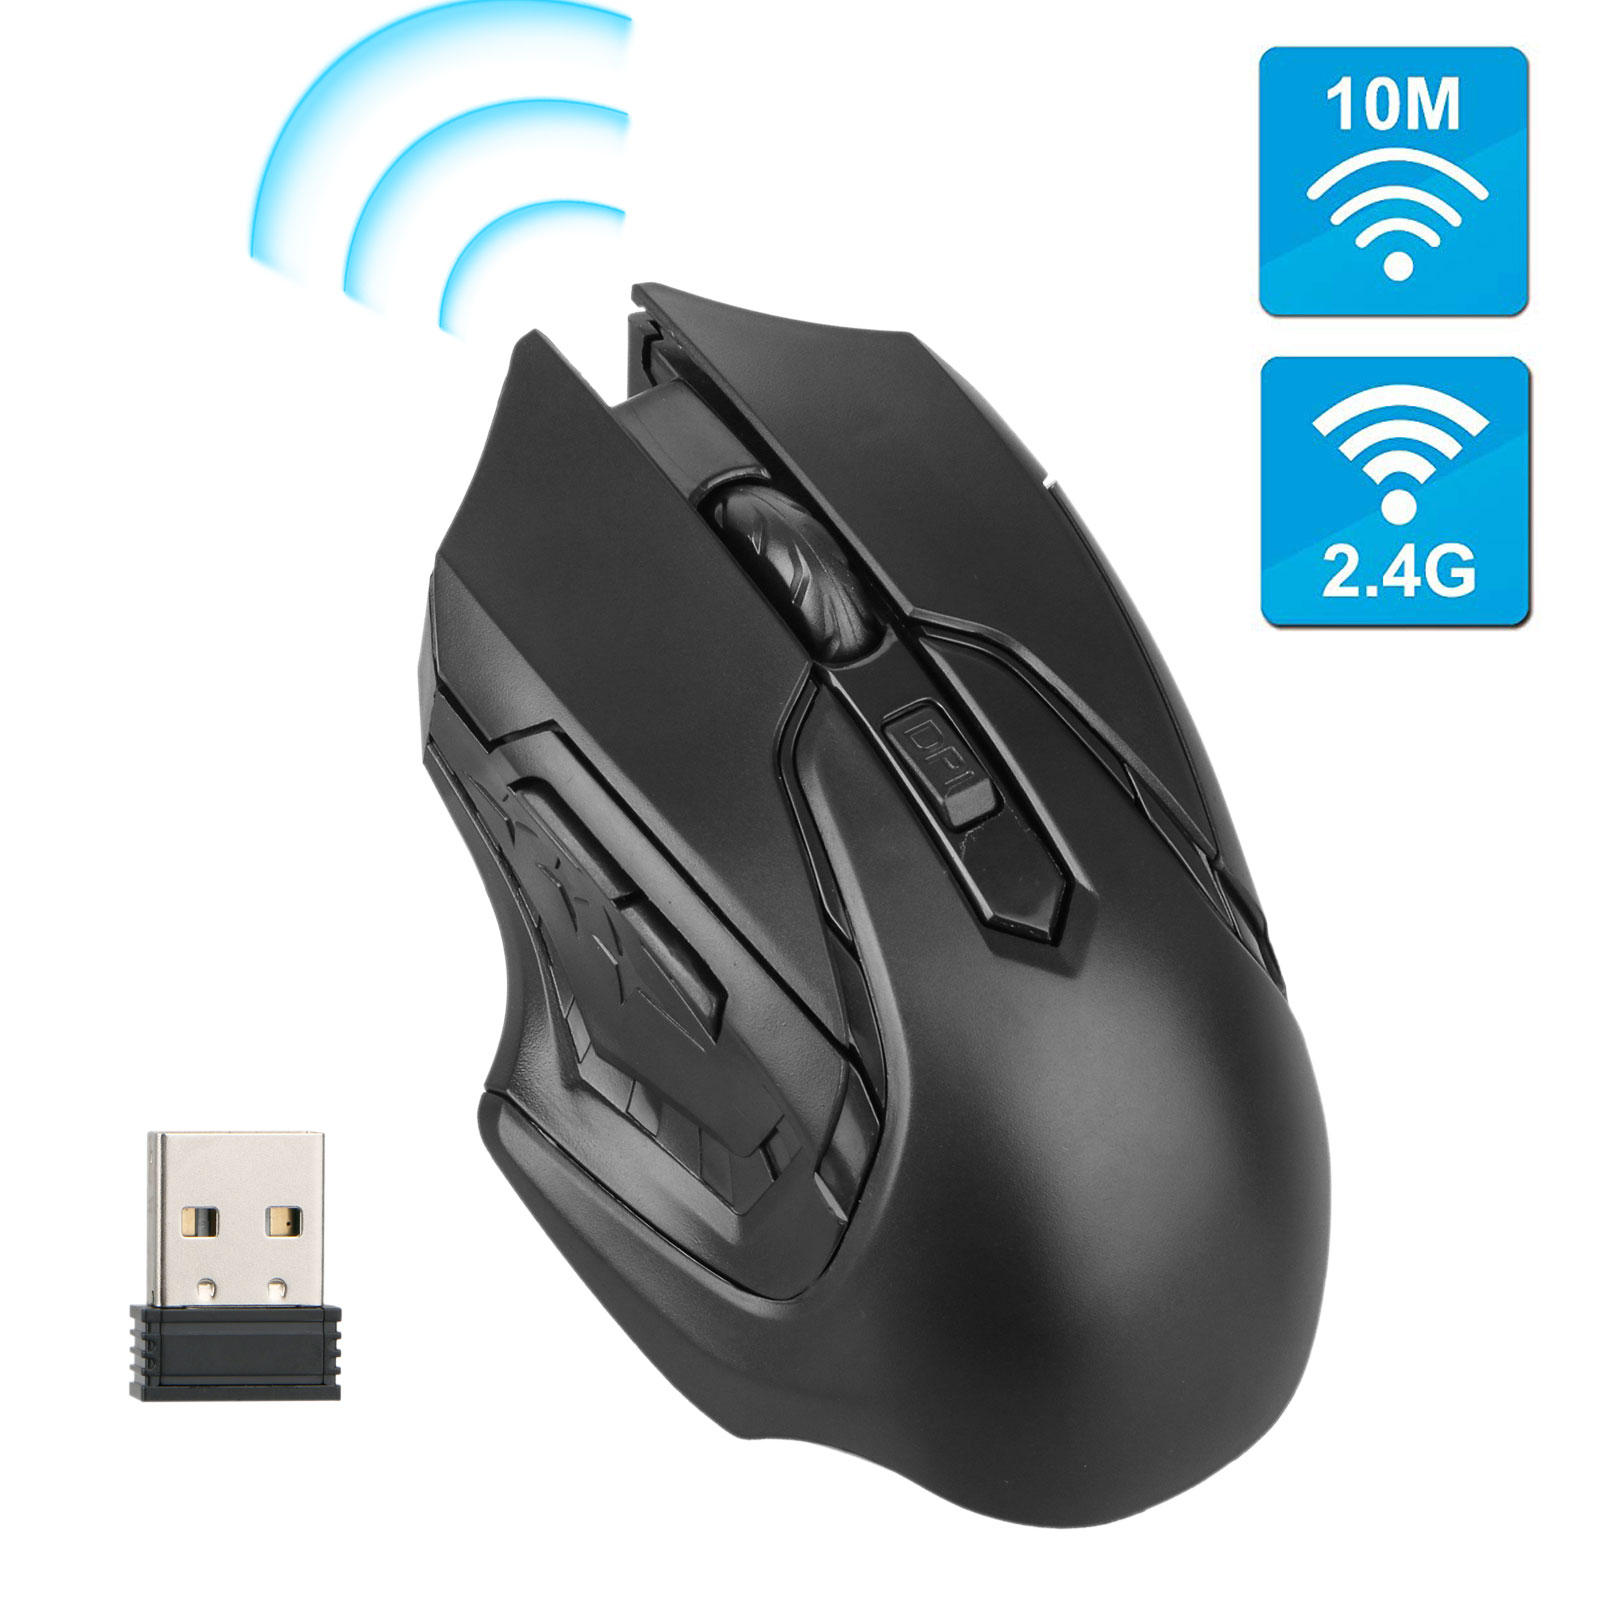 EEEKit Wireless Gaming Mouse  , 6 Buttons, 2.4GHz Gaming Mice With USB Receiver Pro Gamer For PC Laptop Desktop, White